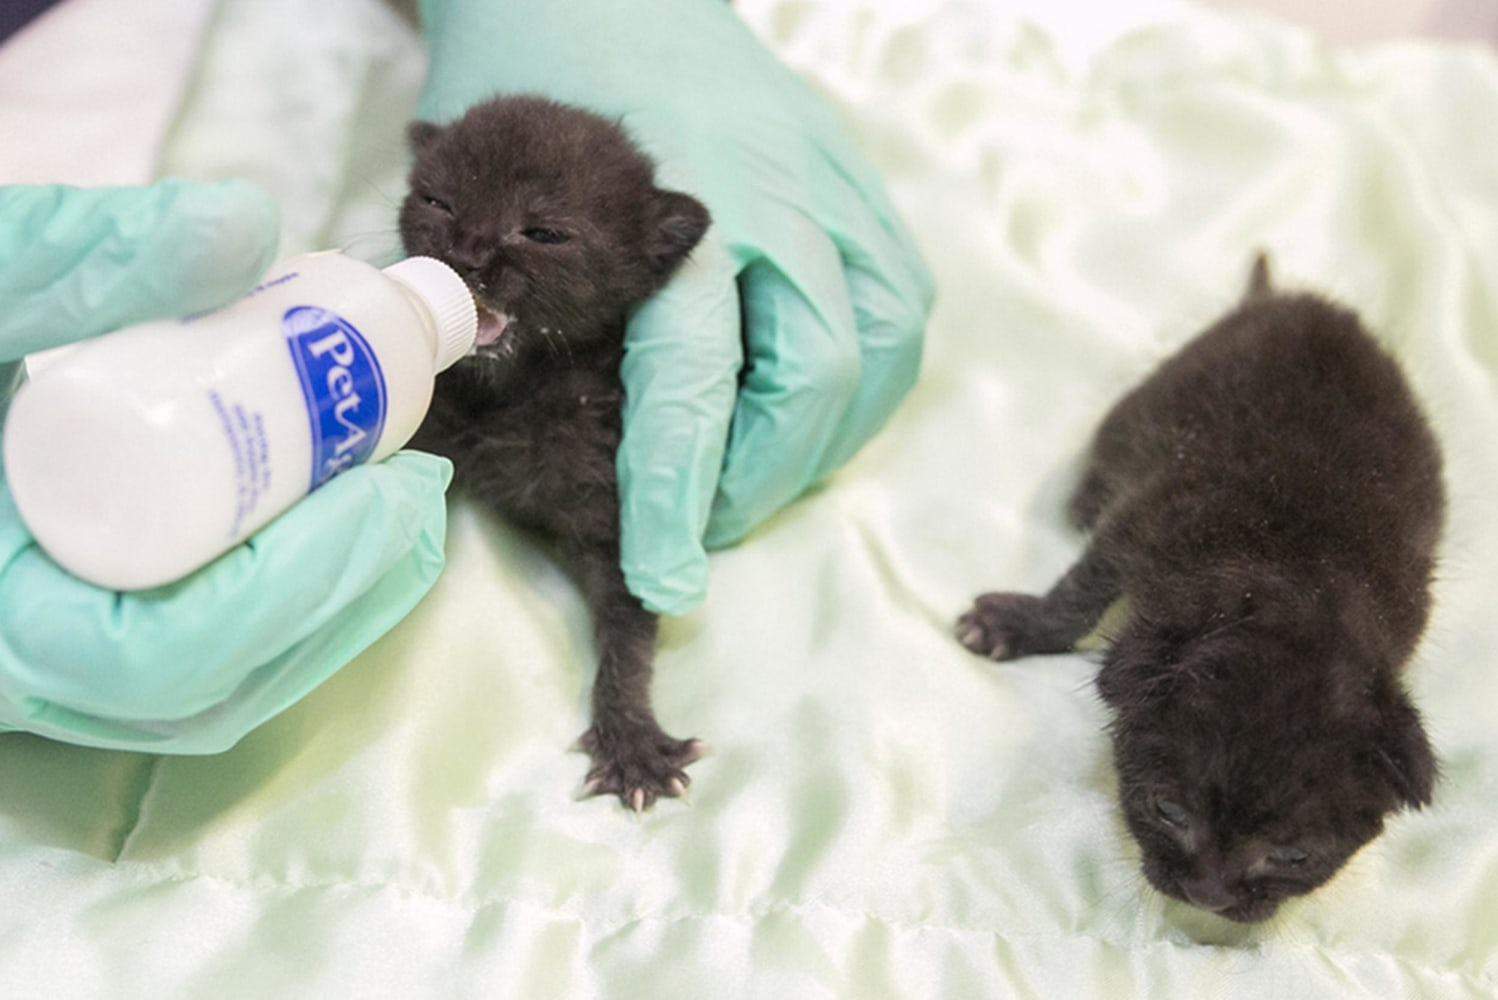 Kittens Packed Into Cardboard Box Shipped to Cable pany NBC News